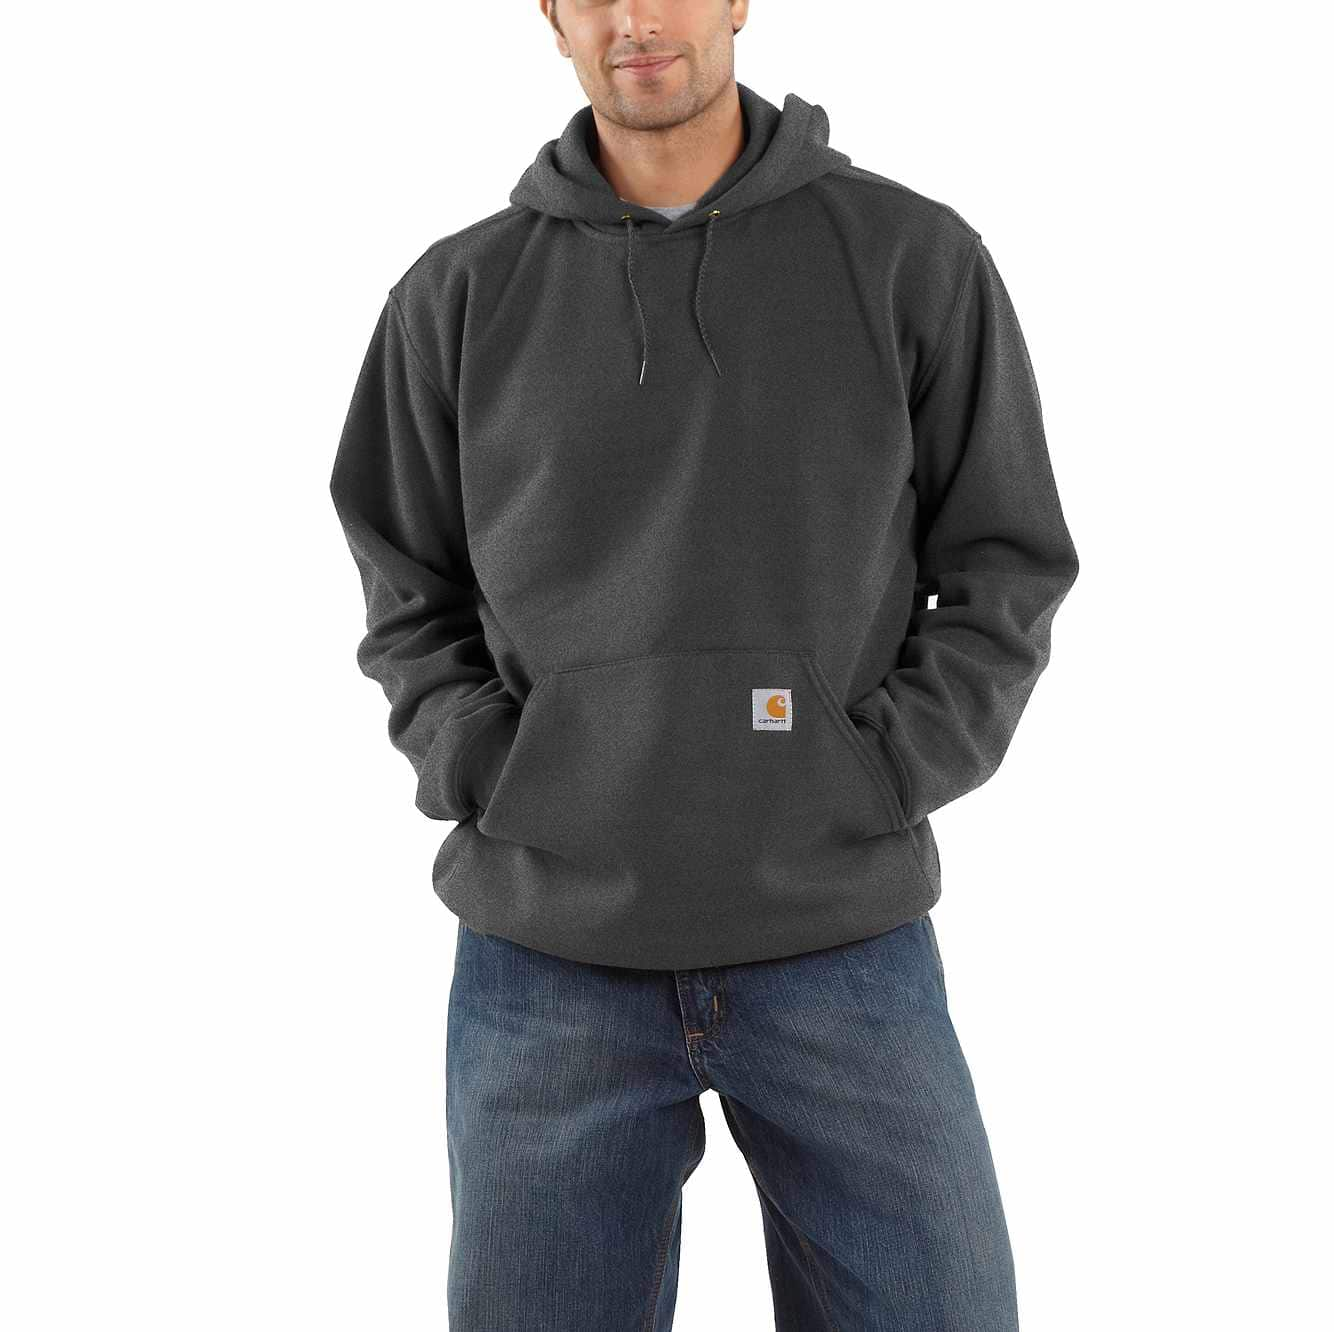 Picture of Hooded Pullover Midweight Sweatshirt in Charcoal Heather